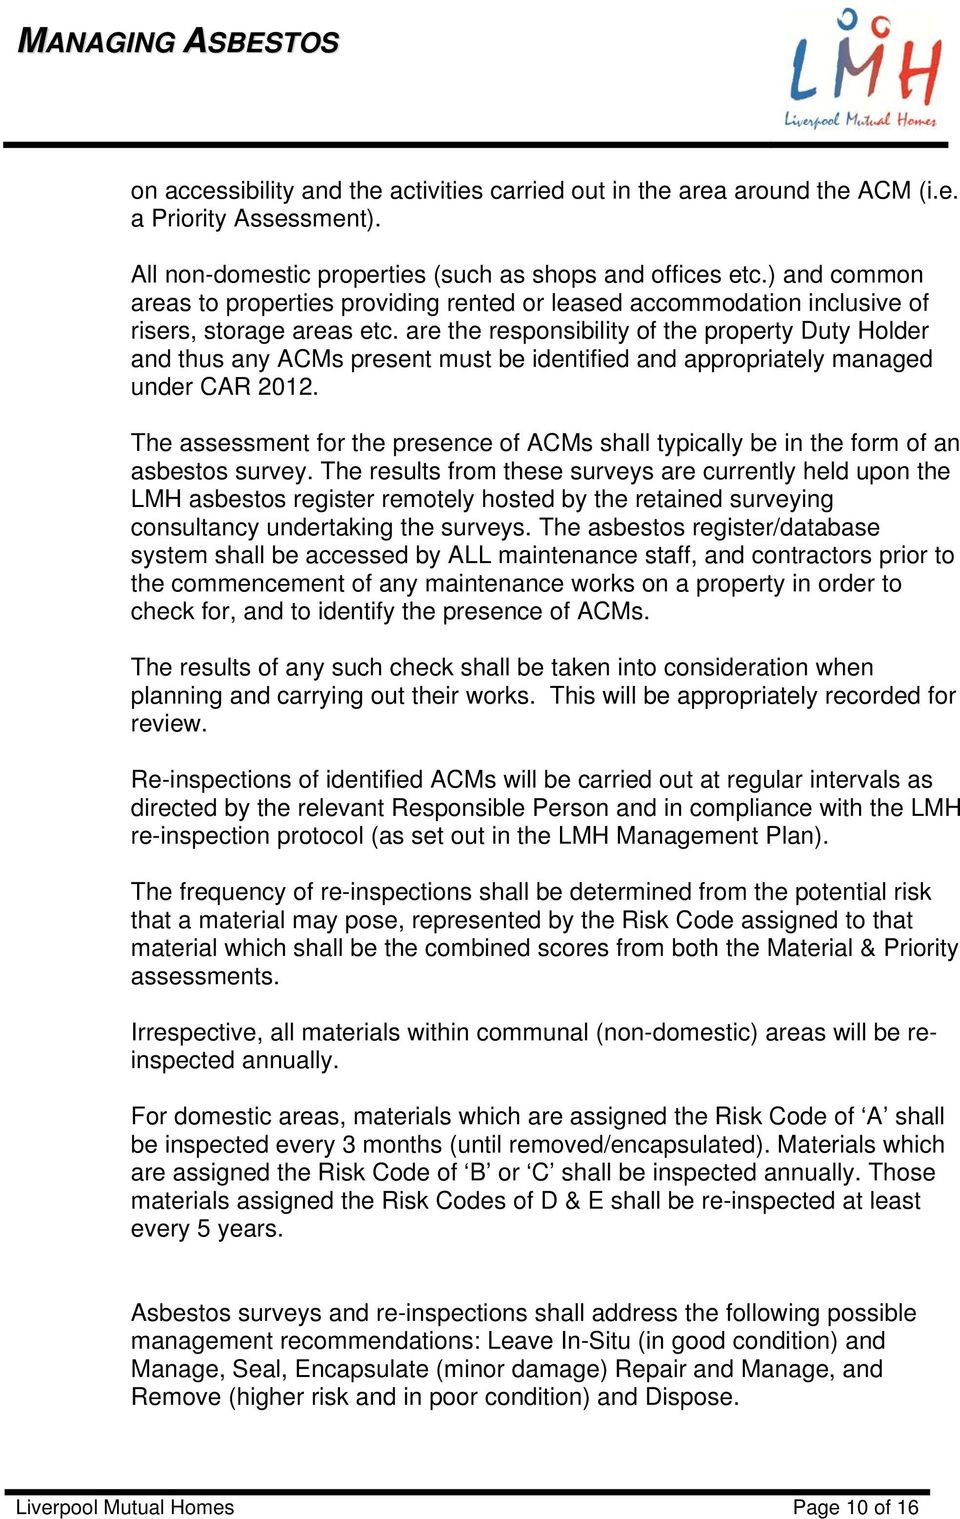 are the responsibility of the property Duty Holder and thus any ACMs present must be identified and appropriately managed under CAR 2012.